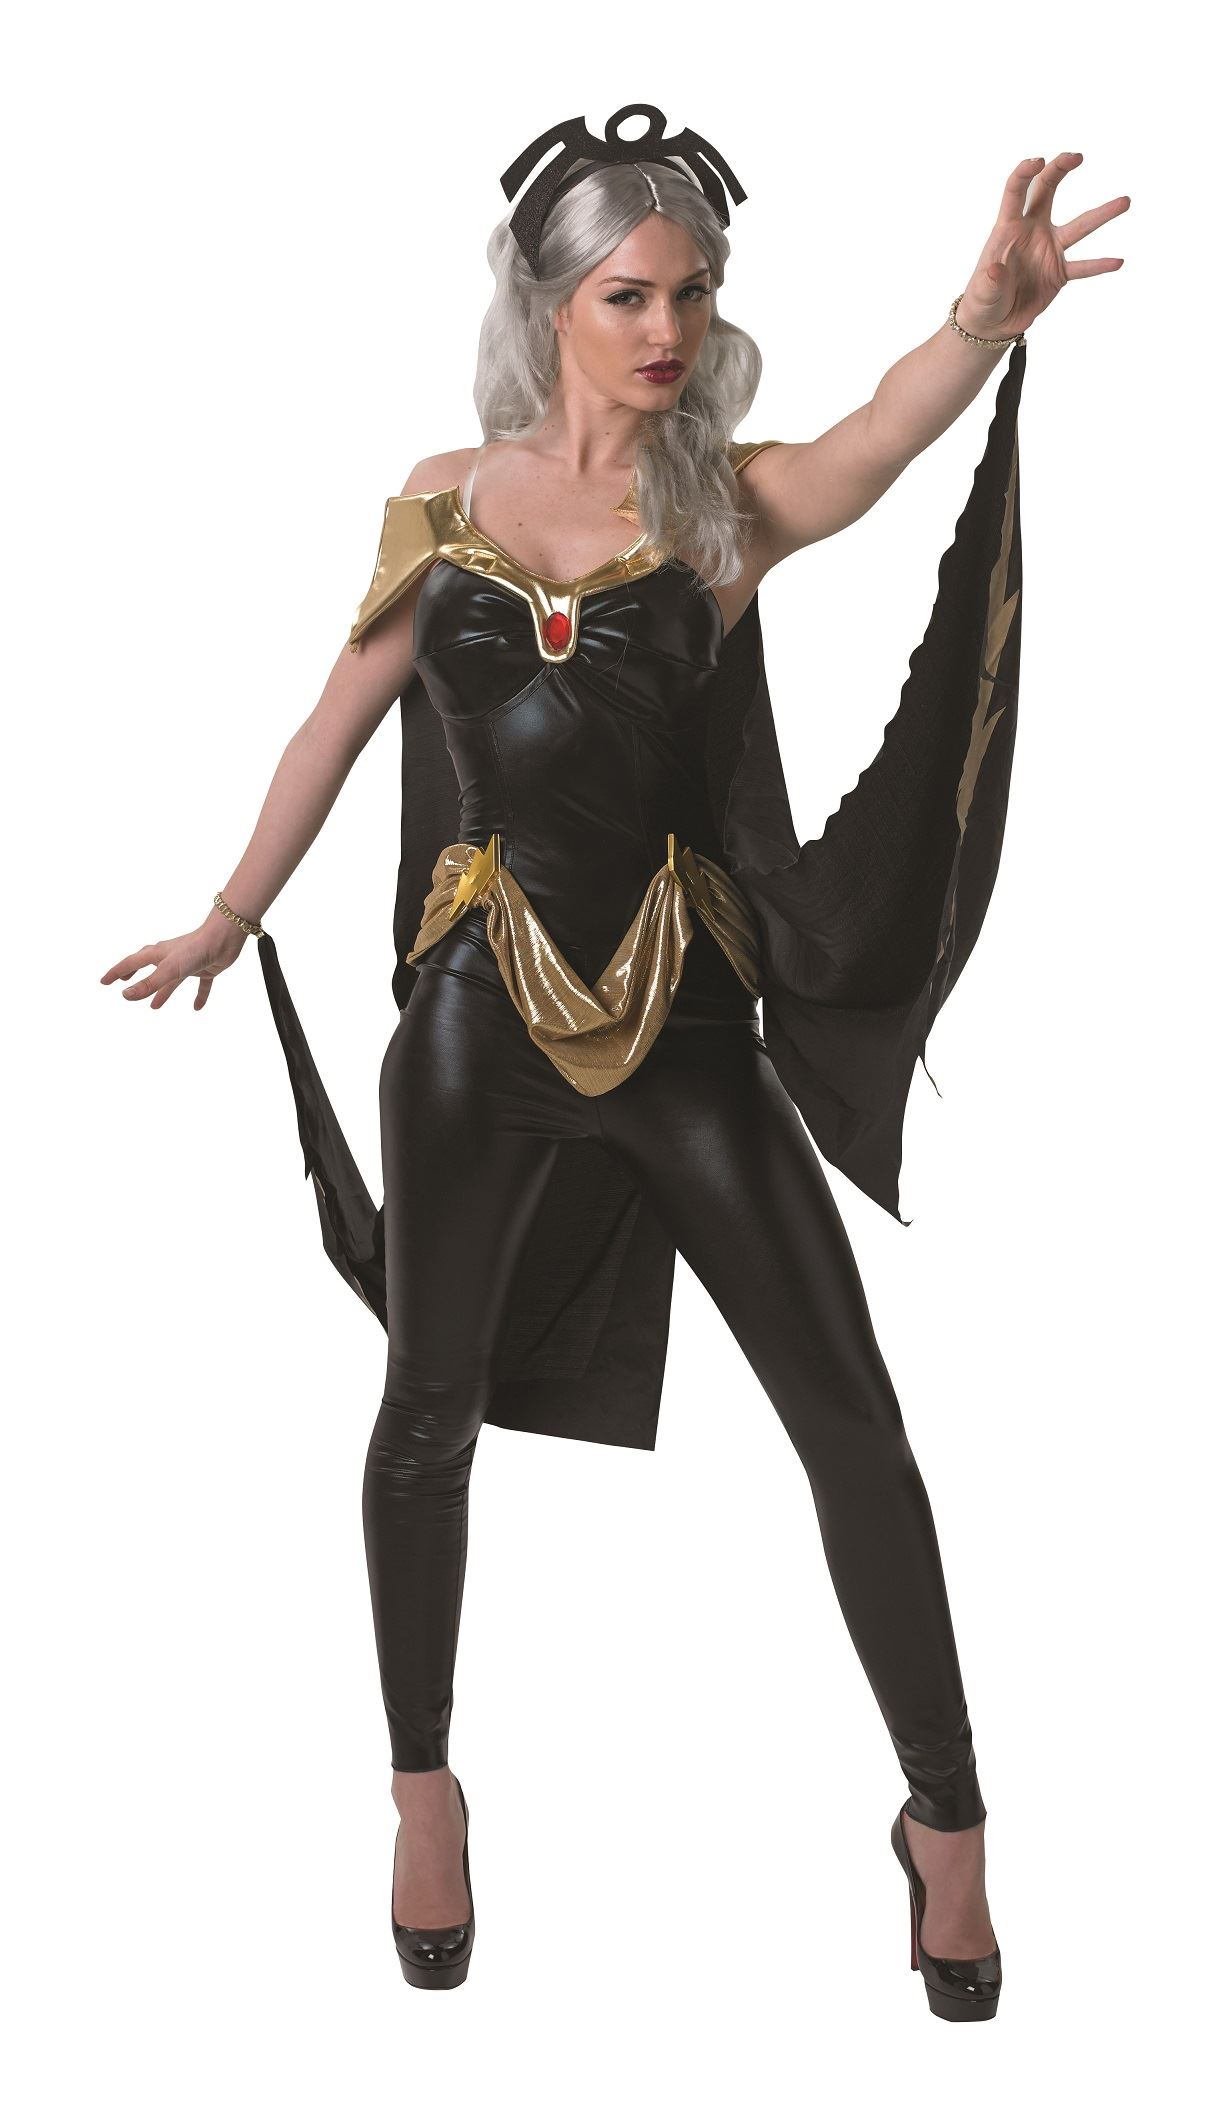 Adult Storm Woman Sexy Catsuit Costume  sc 1 st  The Costume Land & Adult Storm Woman Sexy Catsuit Costume | $45.99 | The Costume Land